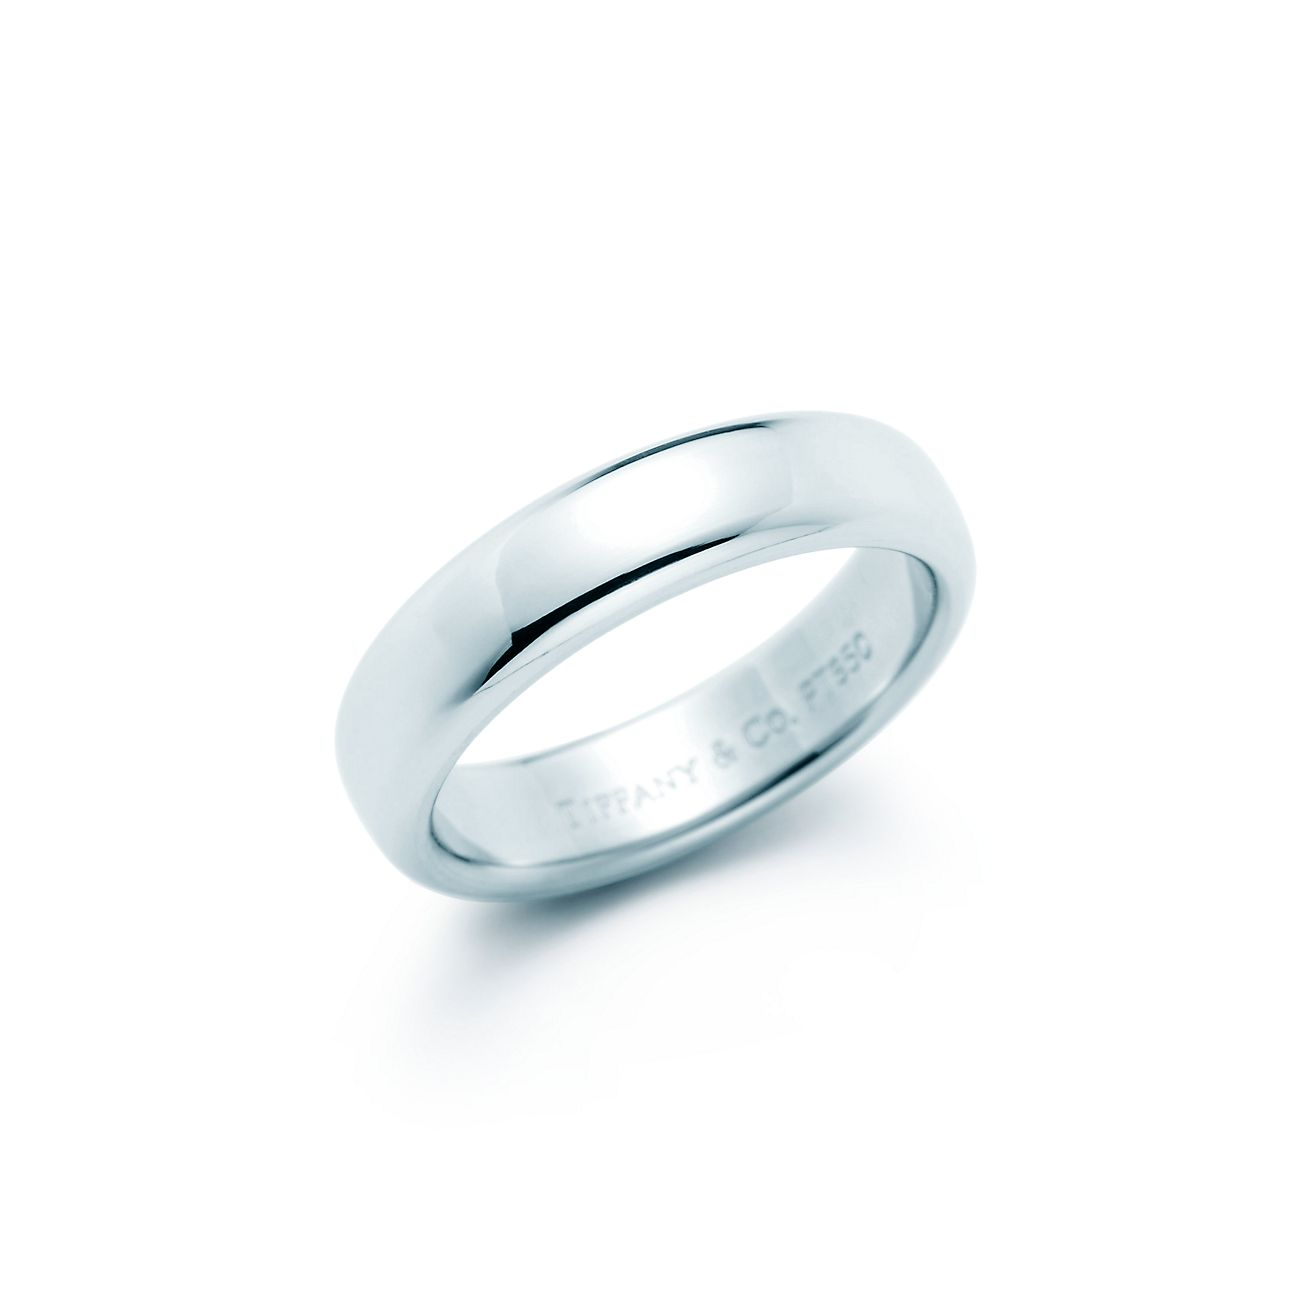 tiffany classicwedding band ring_alternative view 1 - Classic Wedding Rings